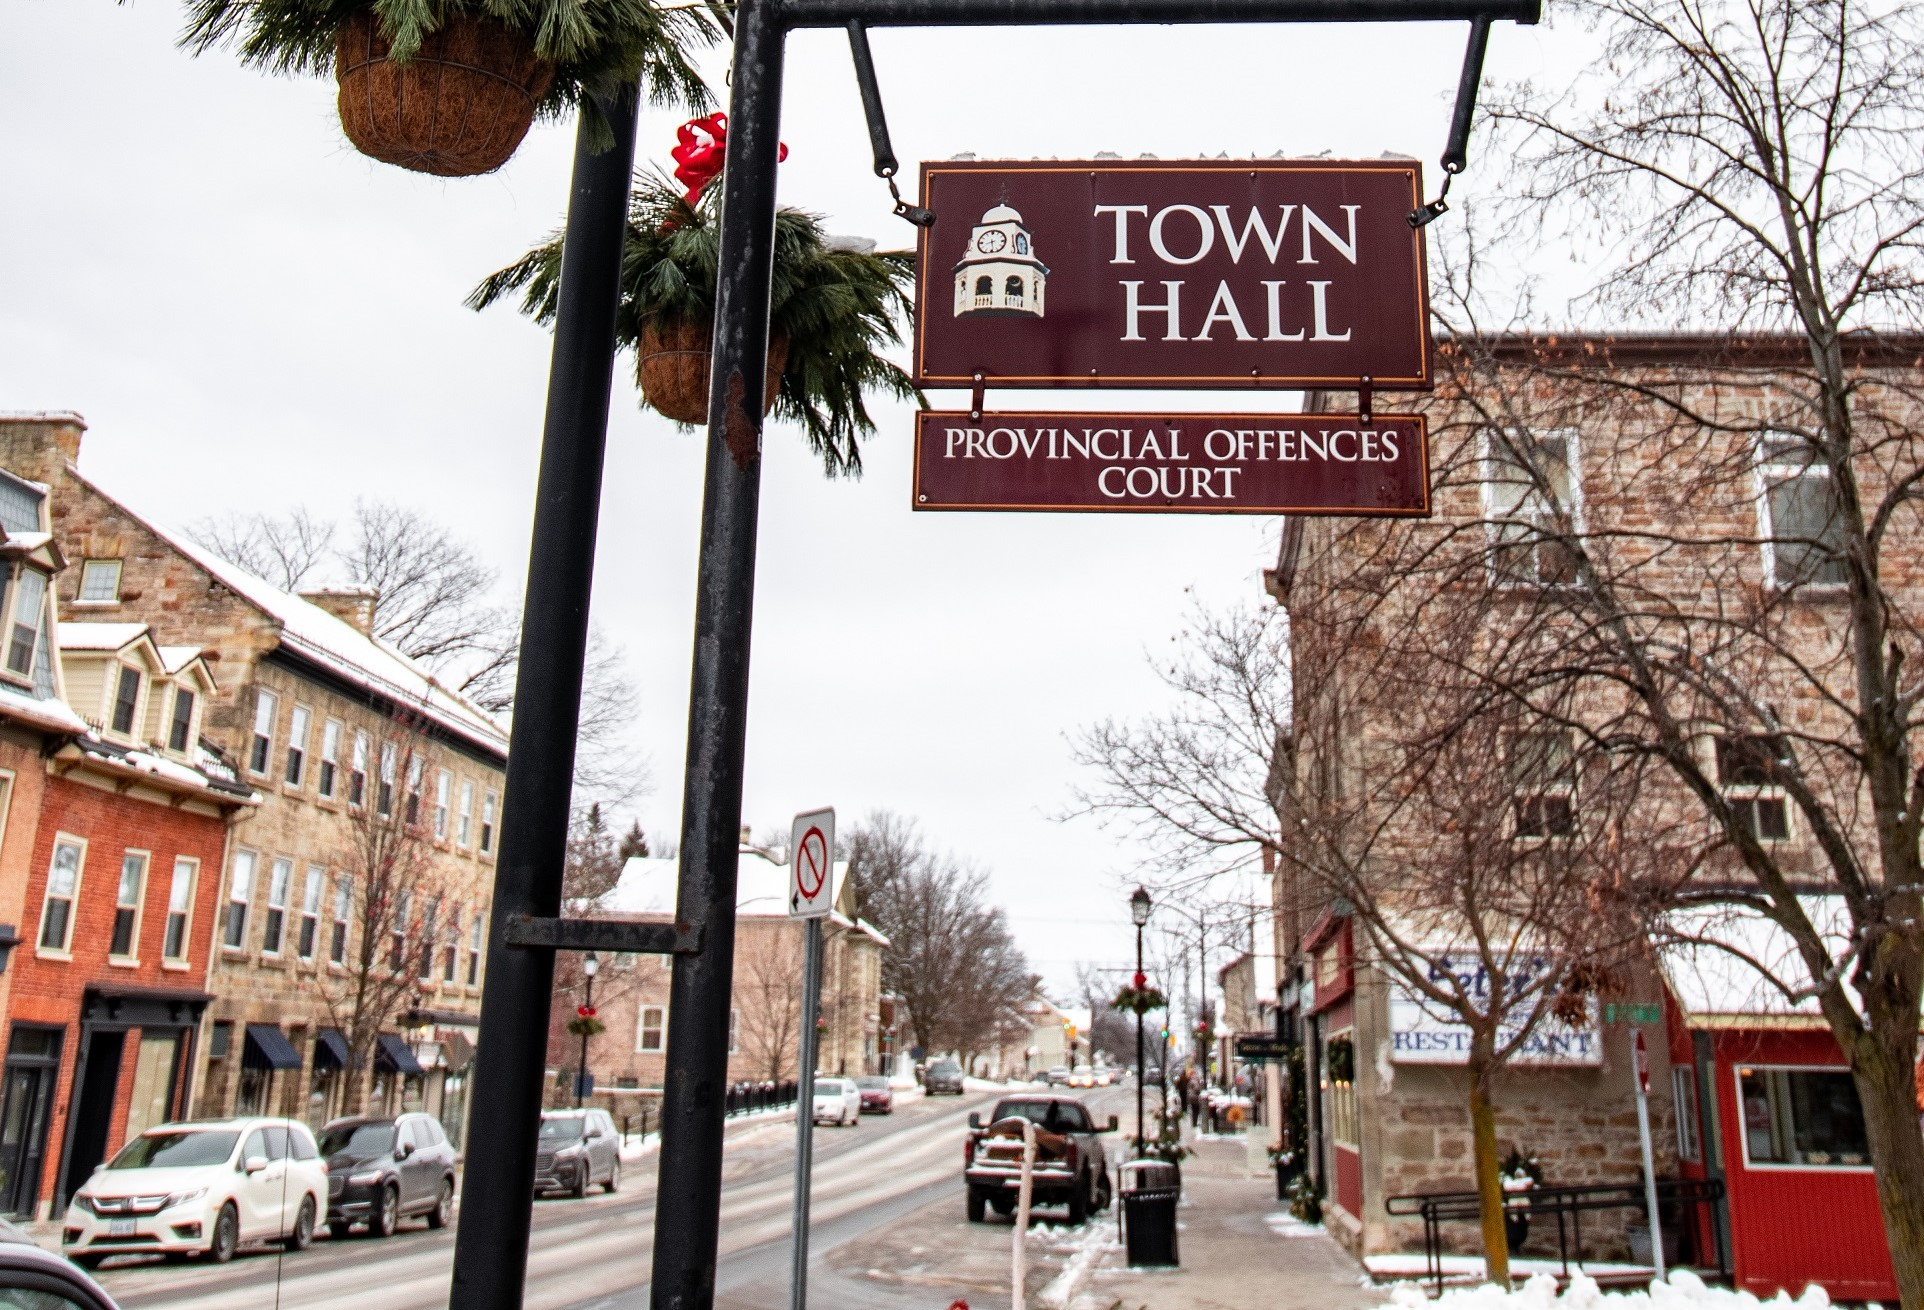 Provincial Stay at Home Order sees Perth Town Hall, other municipal buildings closed